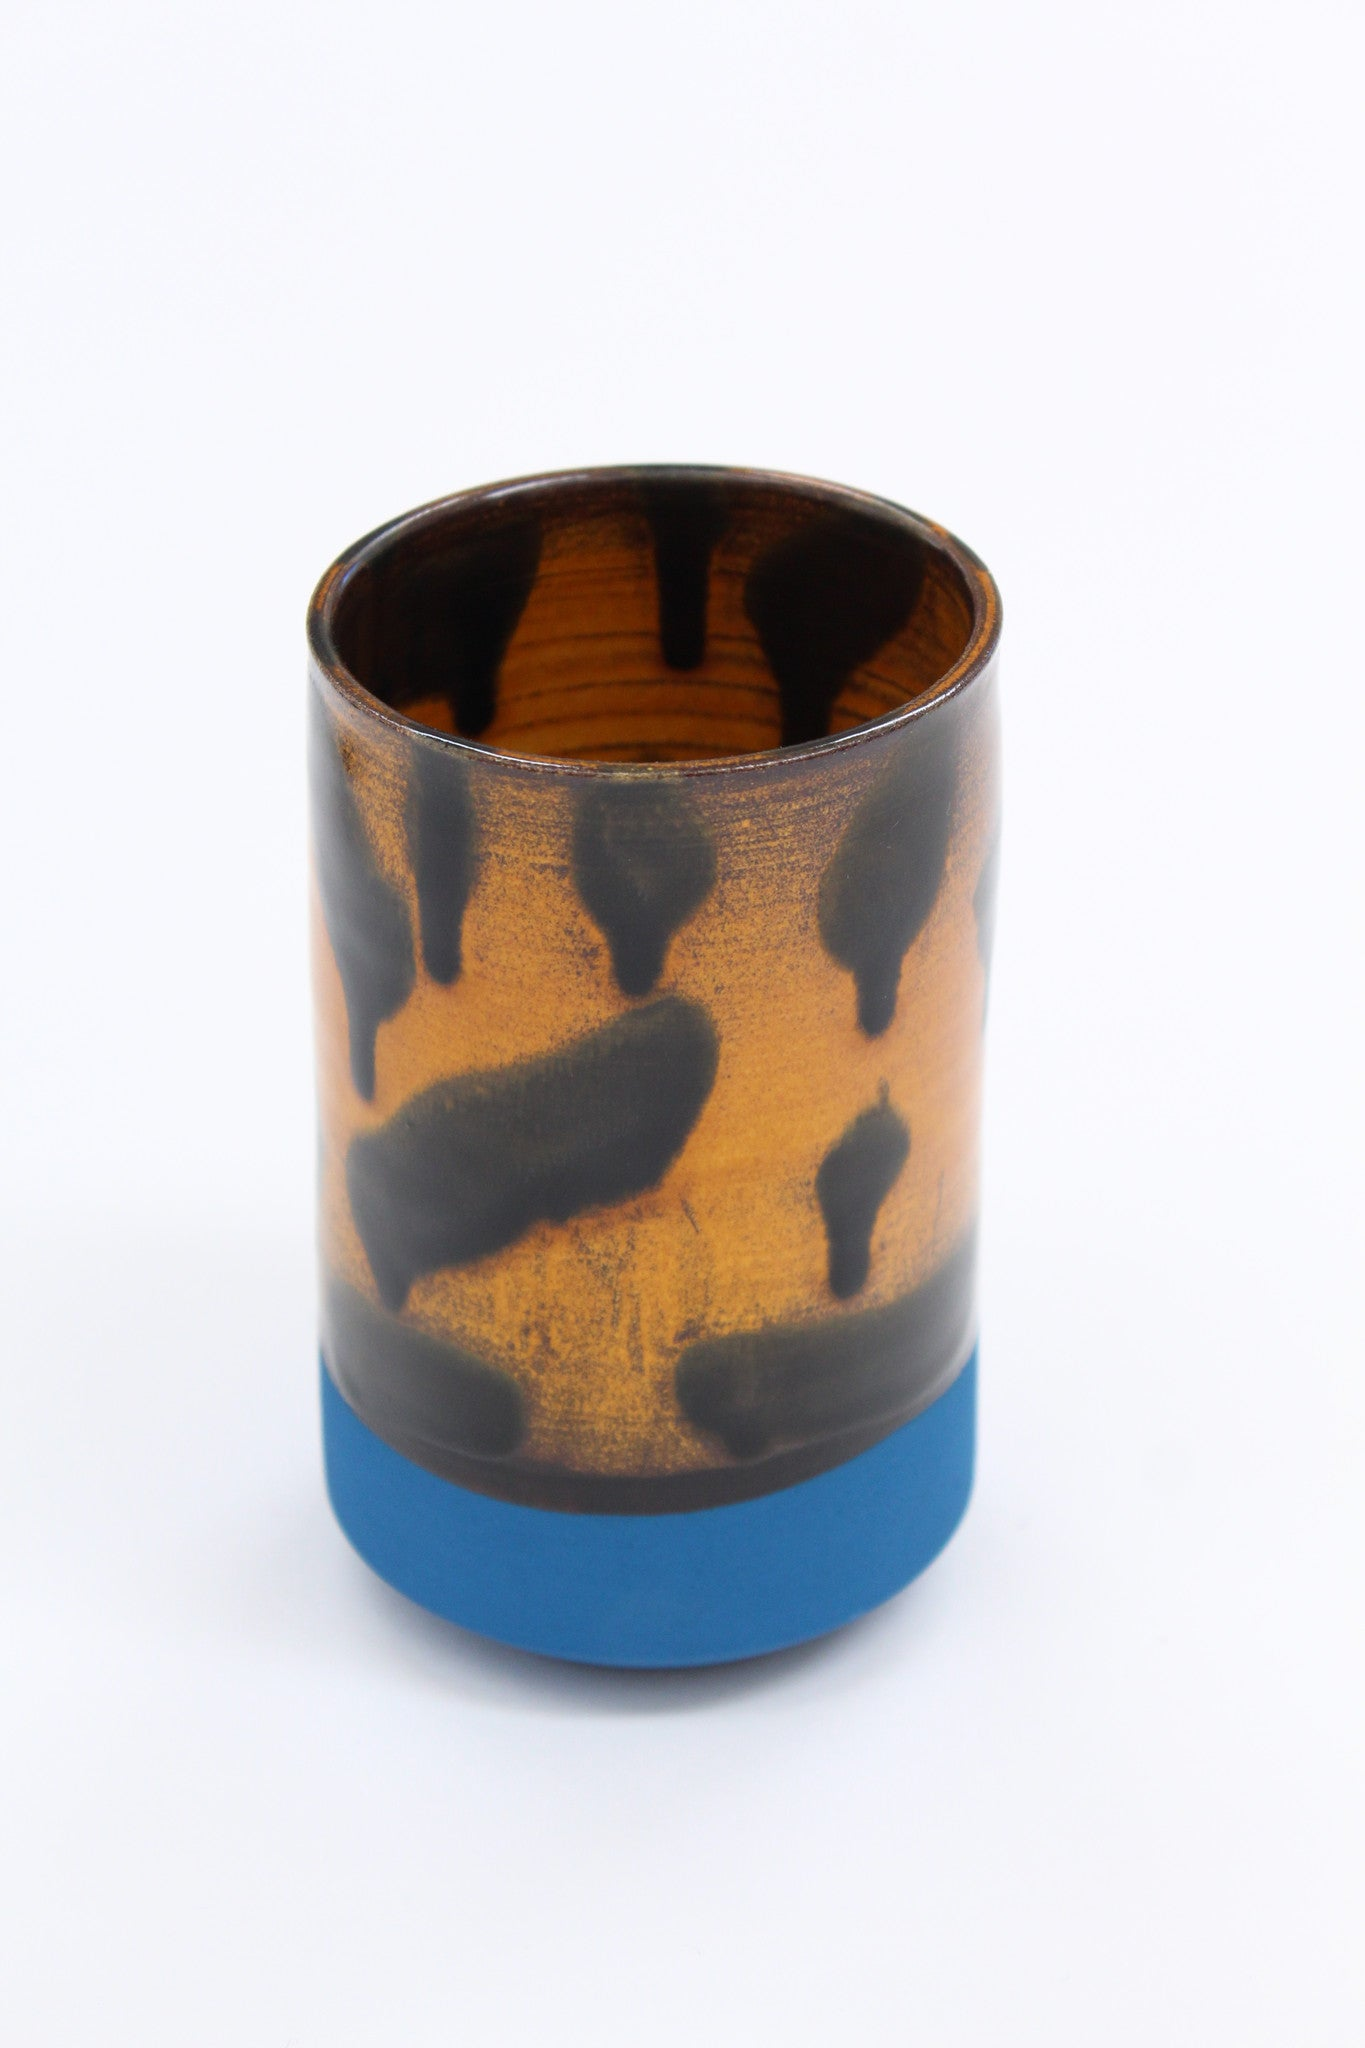 Ceramic Tortoise Shell Cup